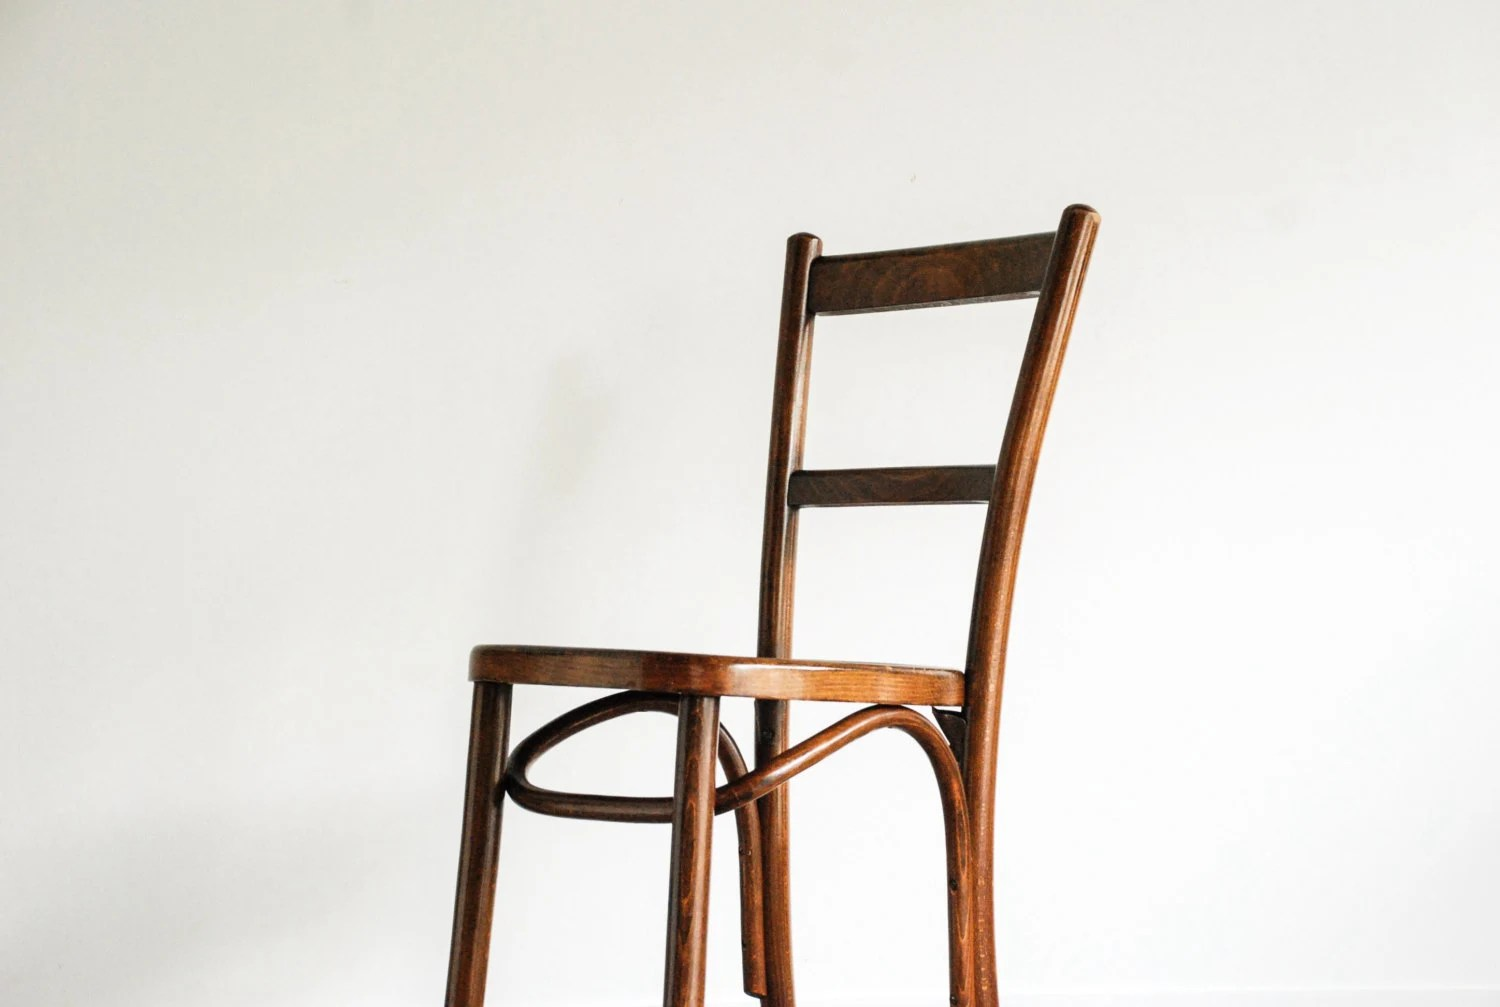 Bent Wood Chairs Bentwood Chair Thonet Chair Cafe Chair Bentwood Thonet